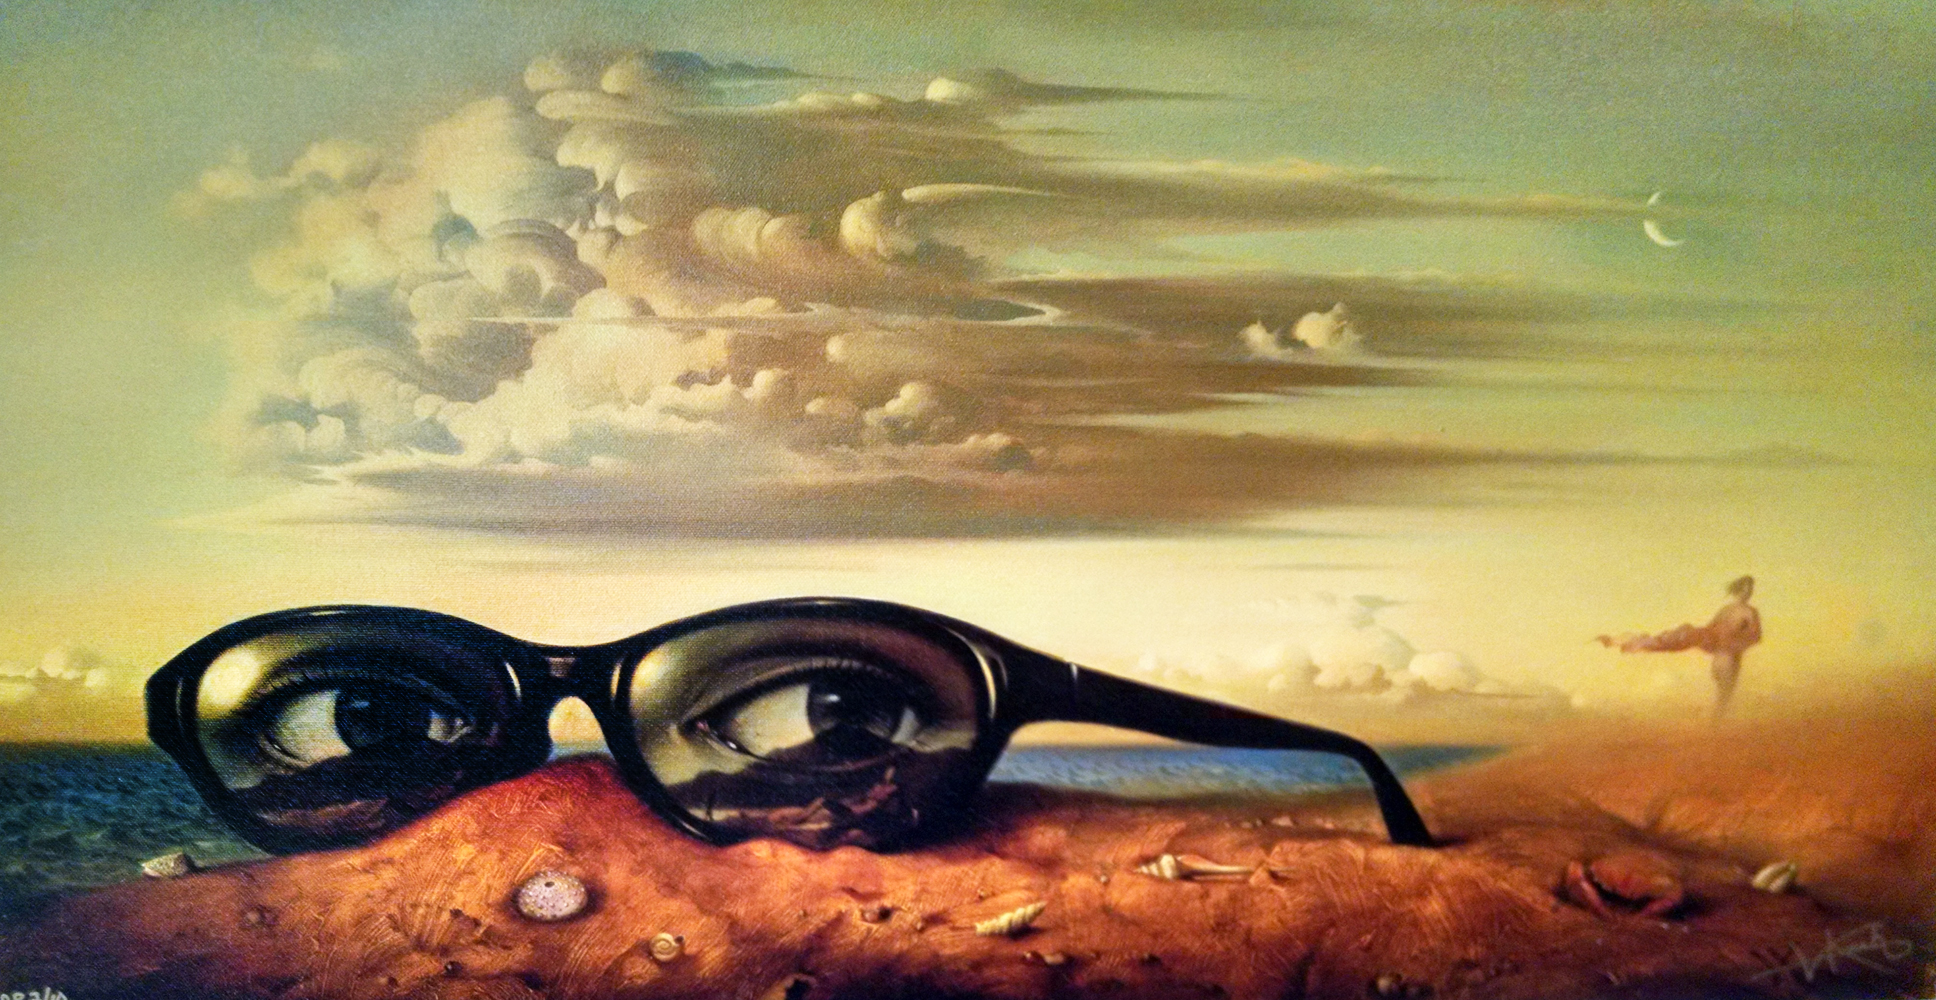 Vladimir kush art for sale for Artworks for sale online